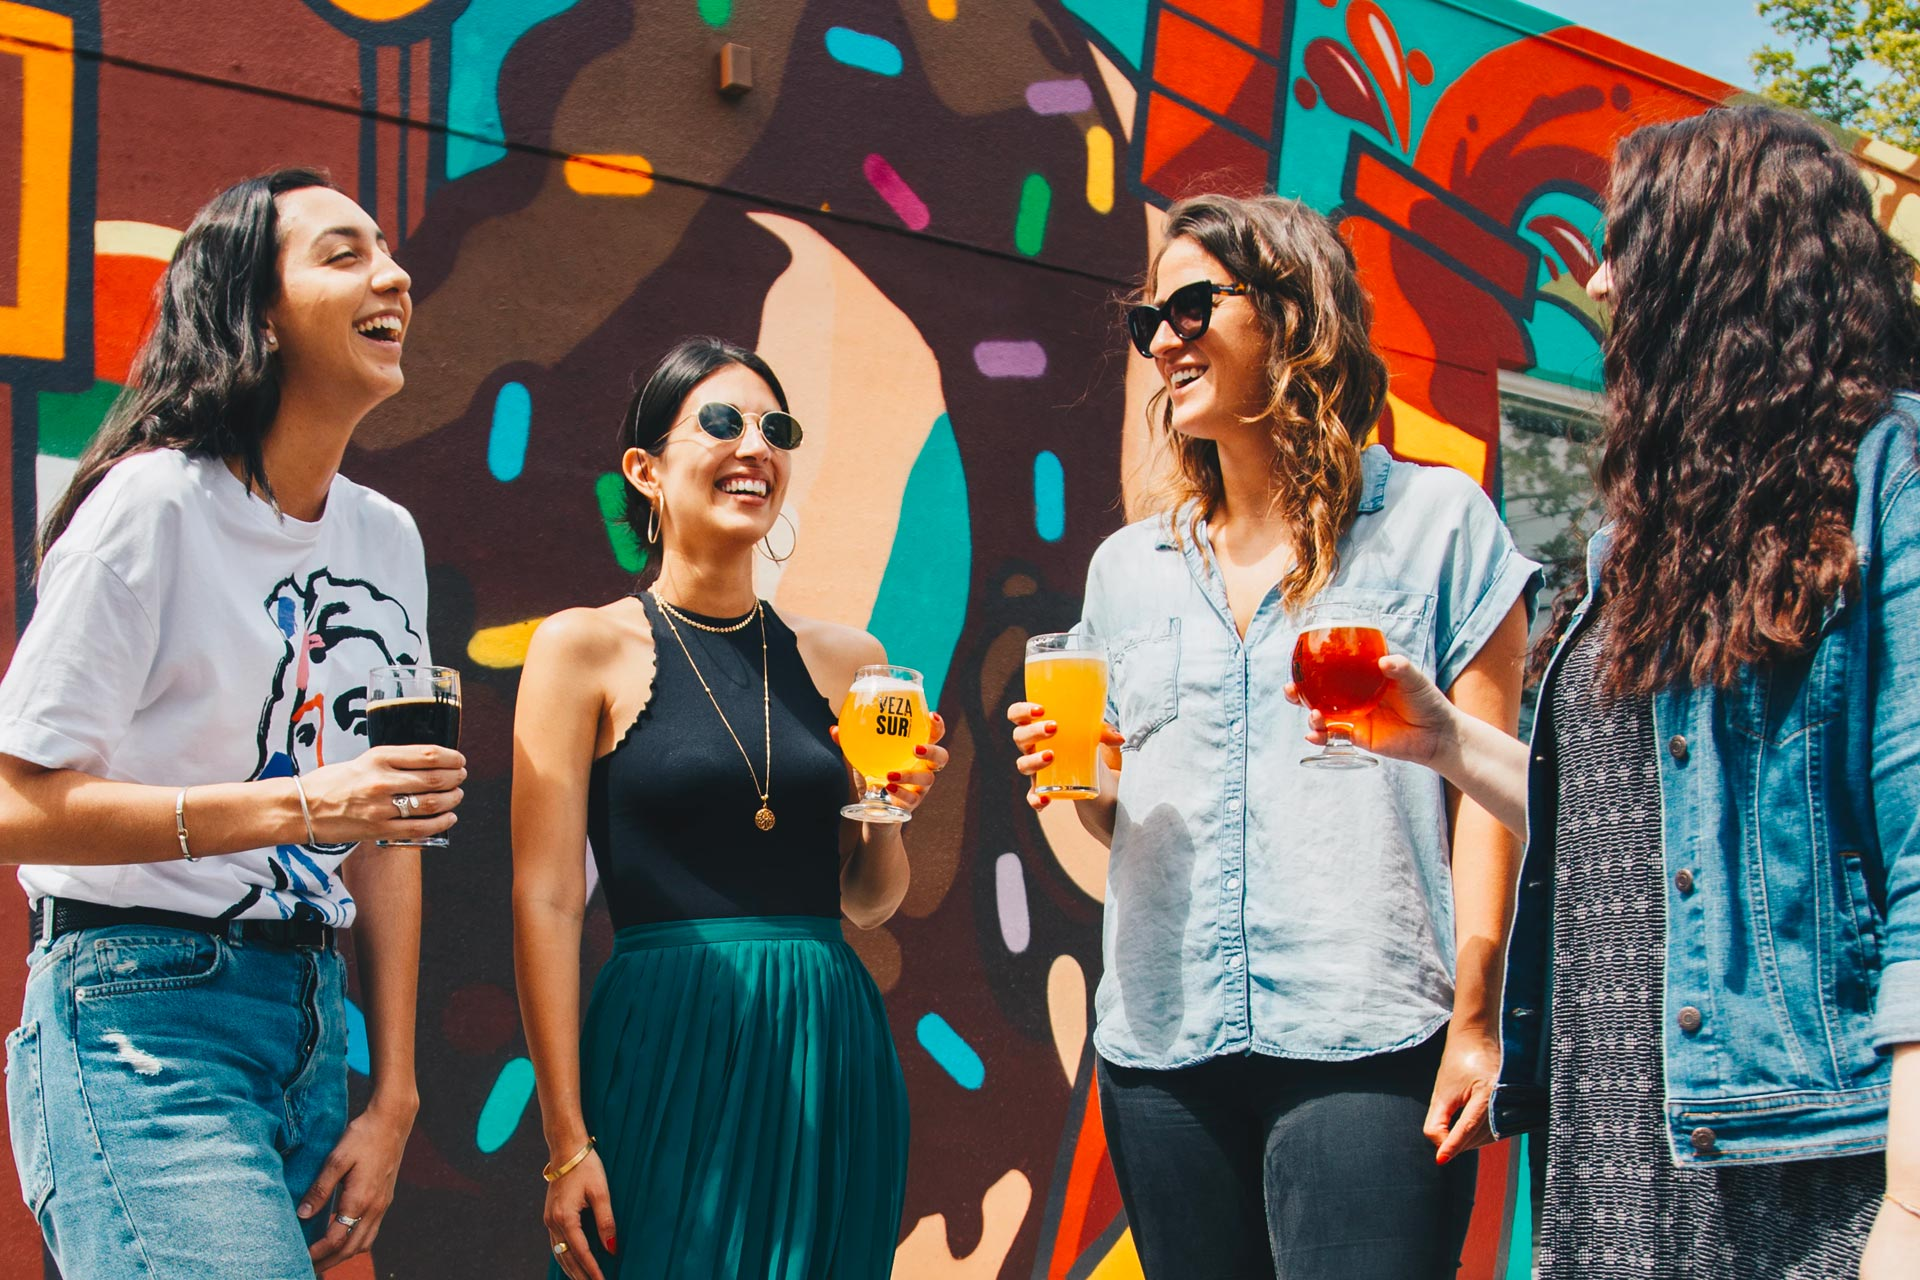 Four women having good time with colorful cocktails and good laugh